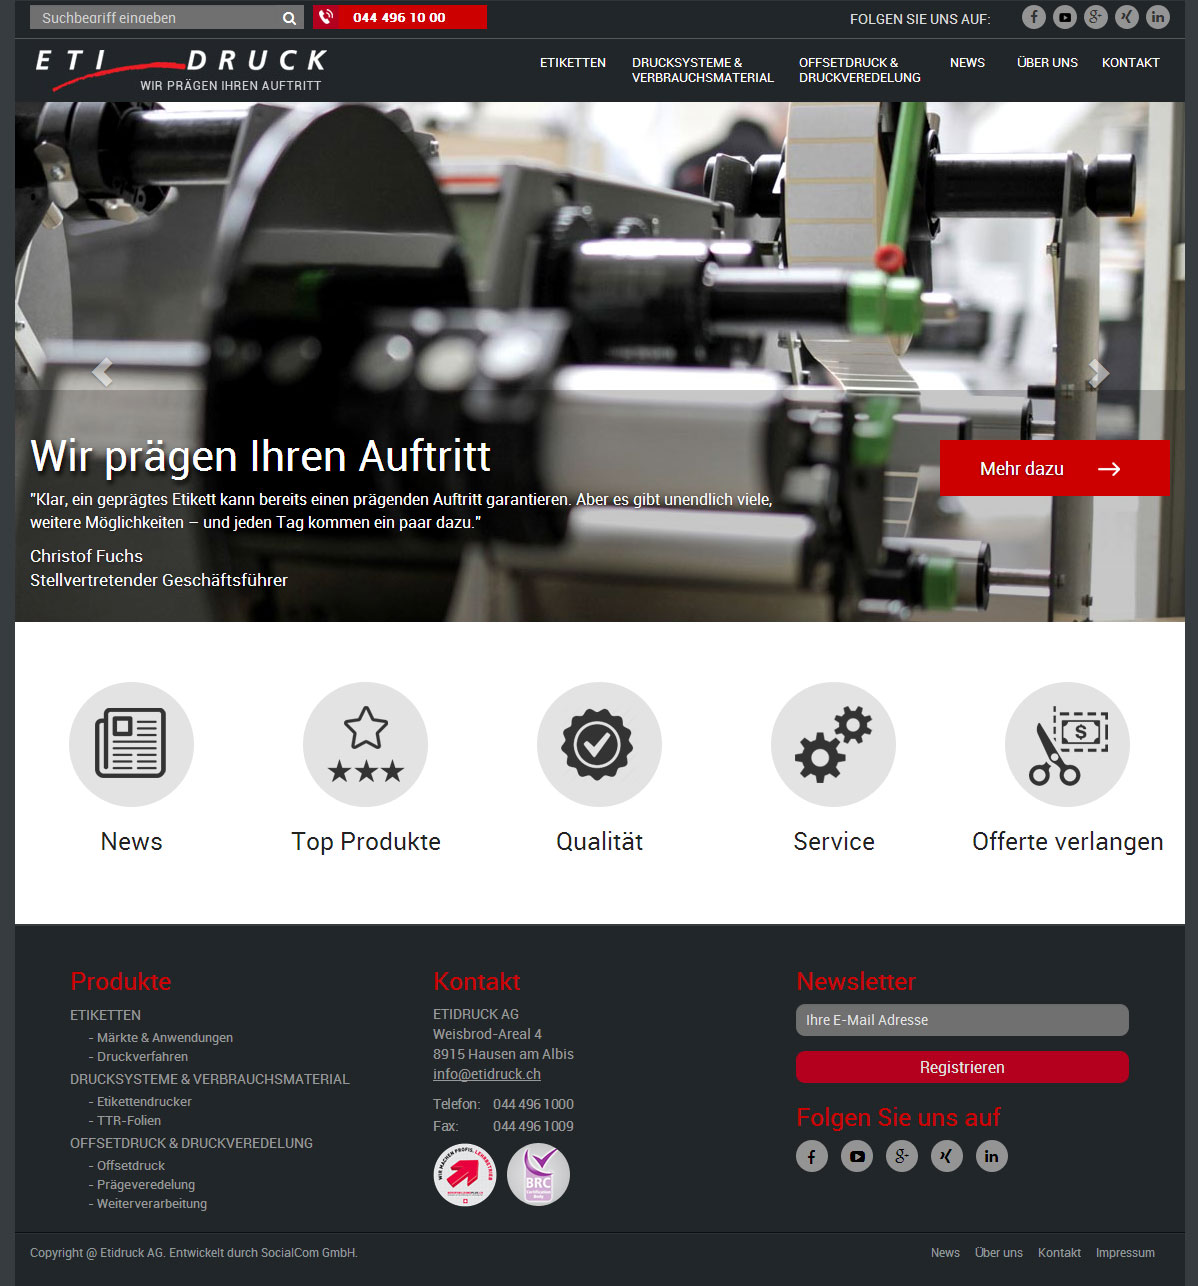 A WordPress Based Customized Label Printing Website